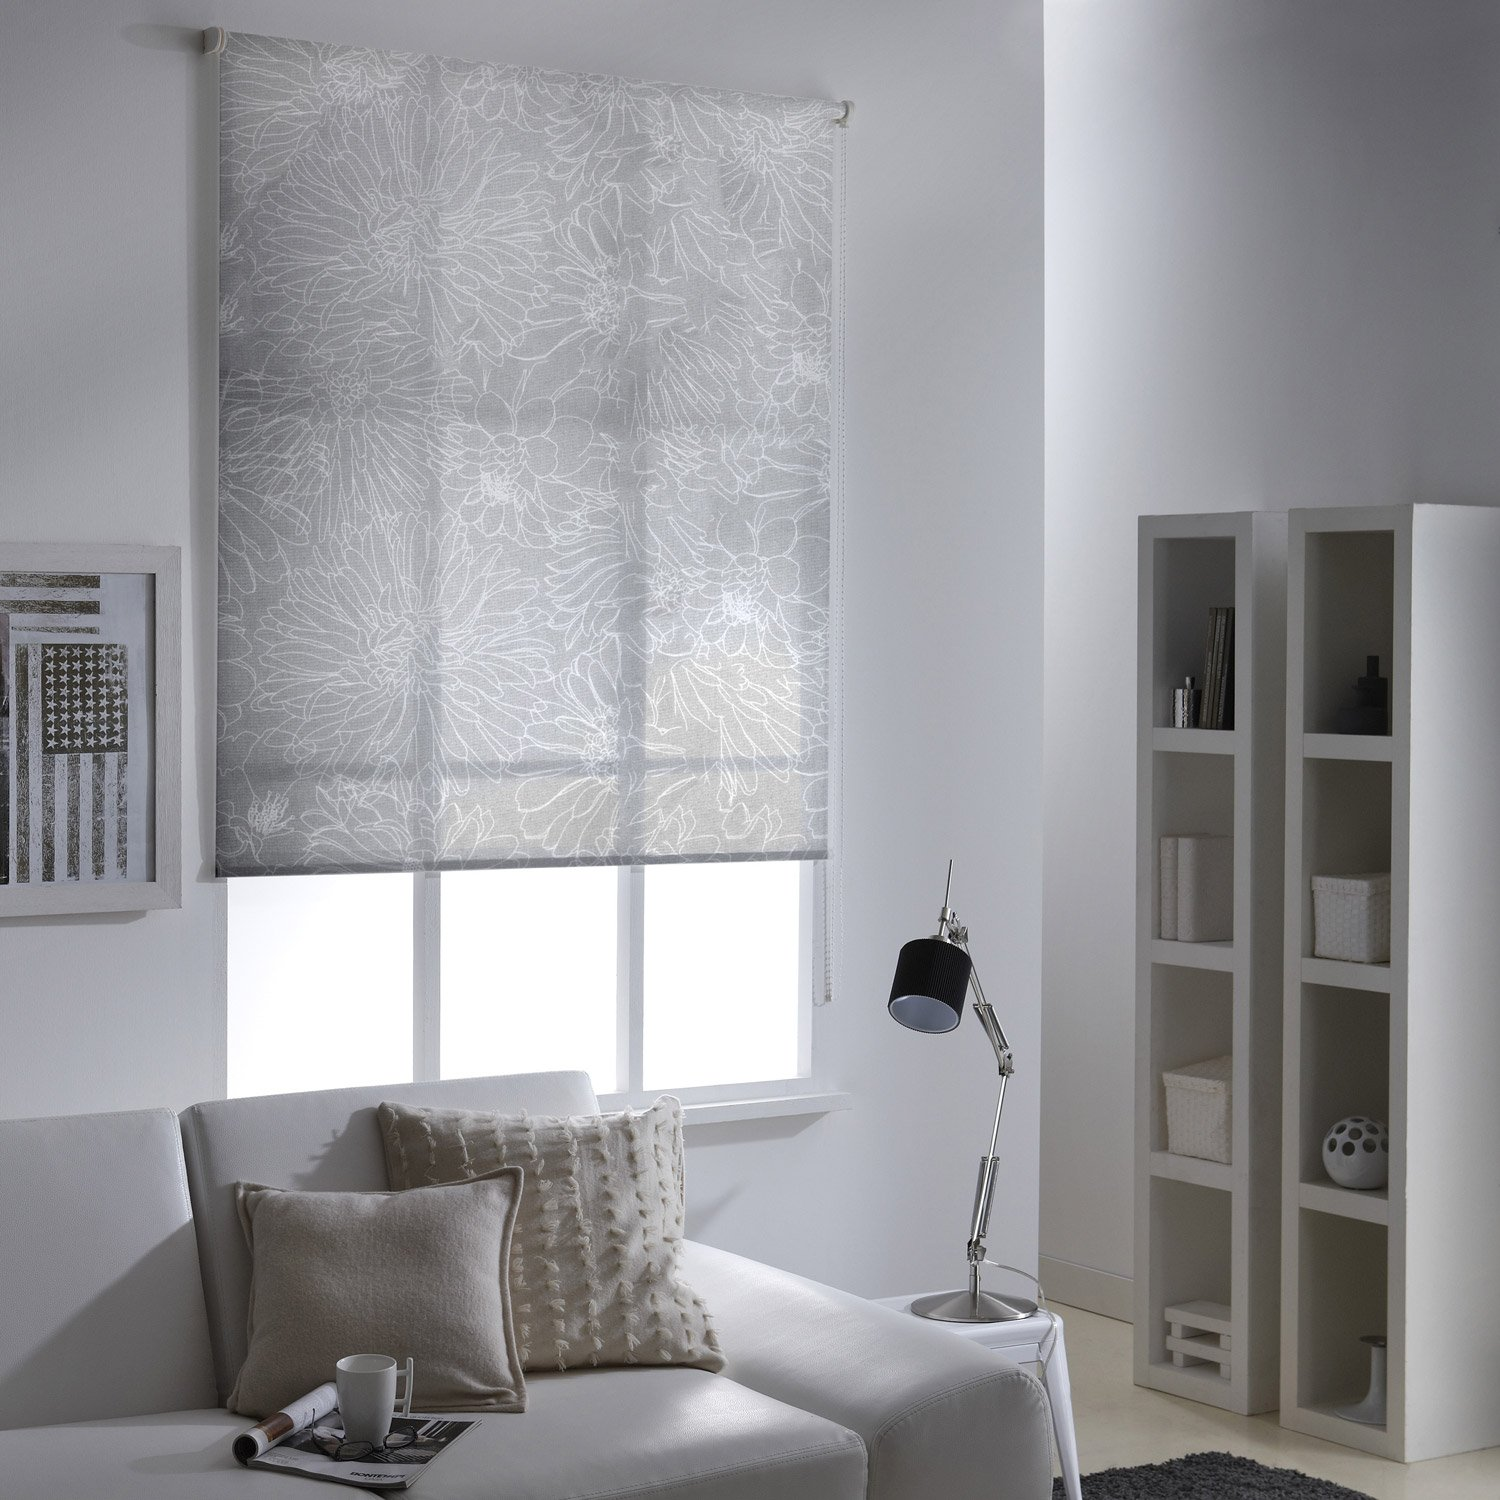 store enrouleur tamisant fleurs crayonn es blanc 125x190 cm leroy merlin. Black Bedroom Furniture Sets. Home Design Ideas